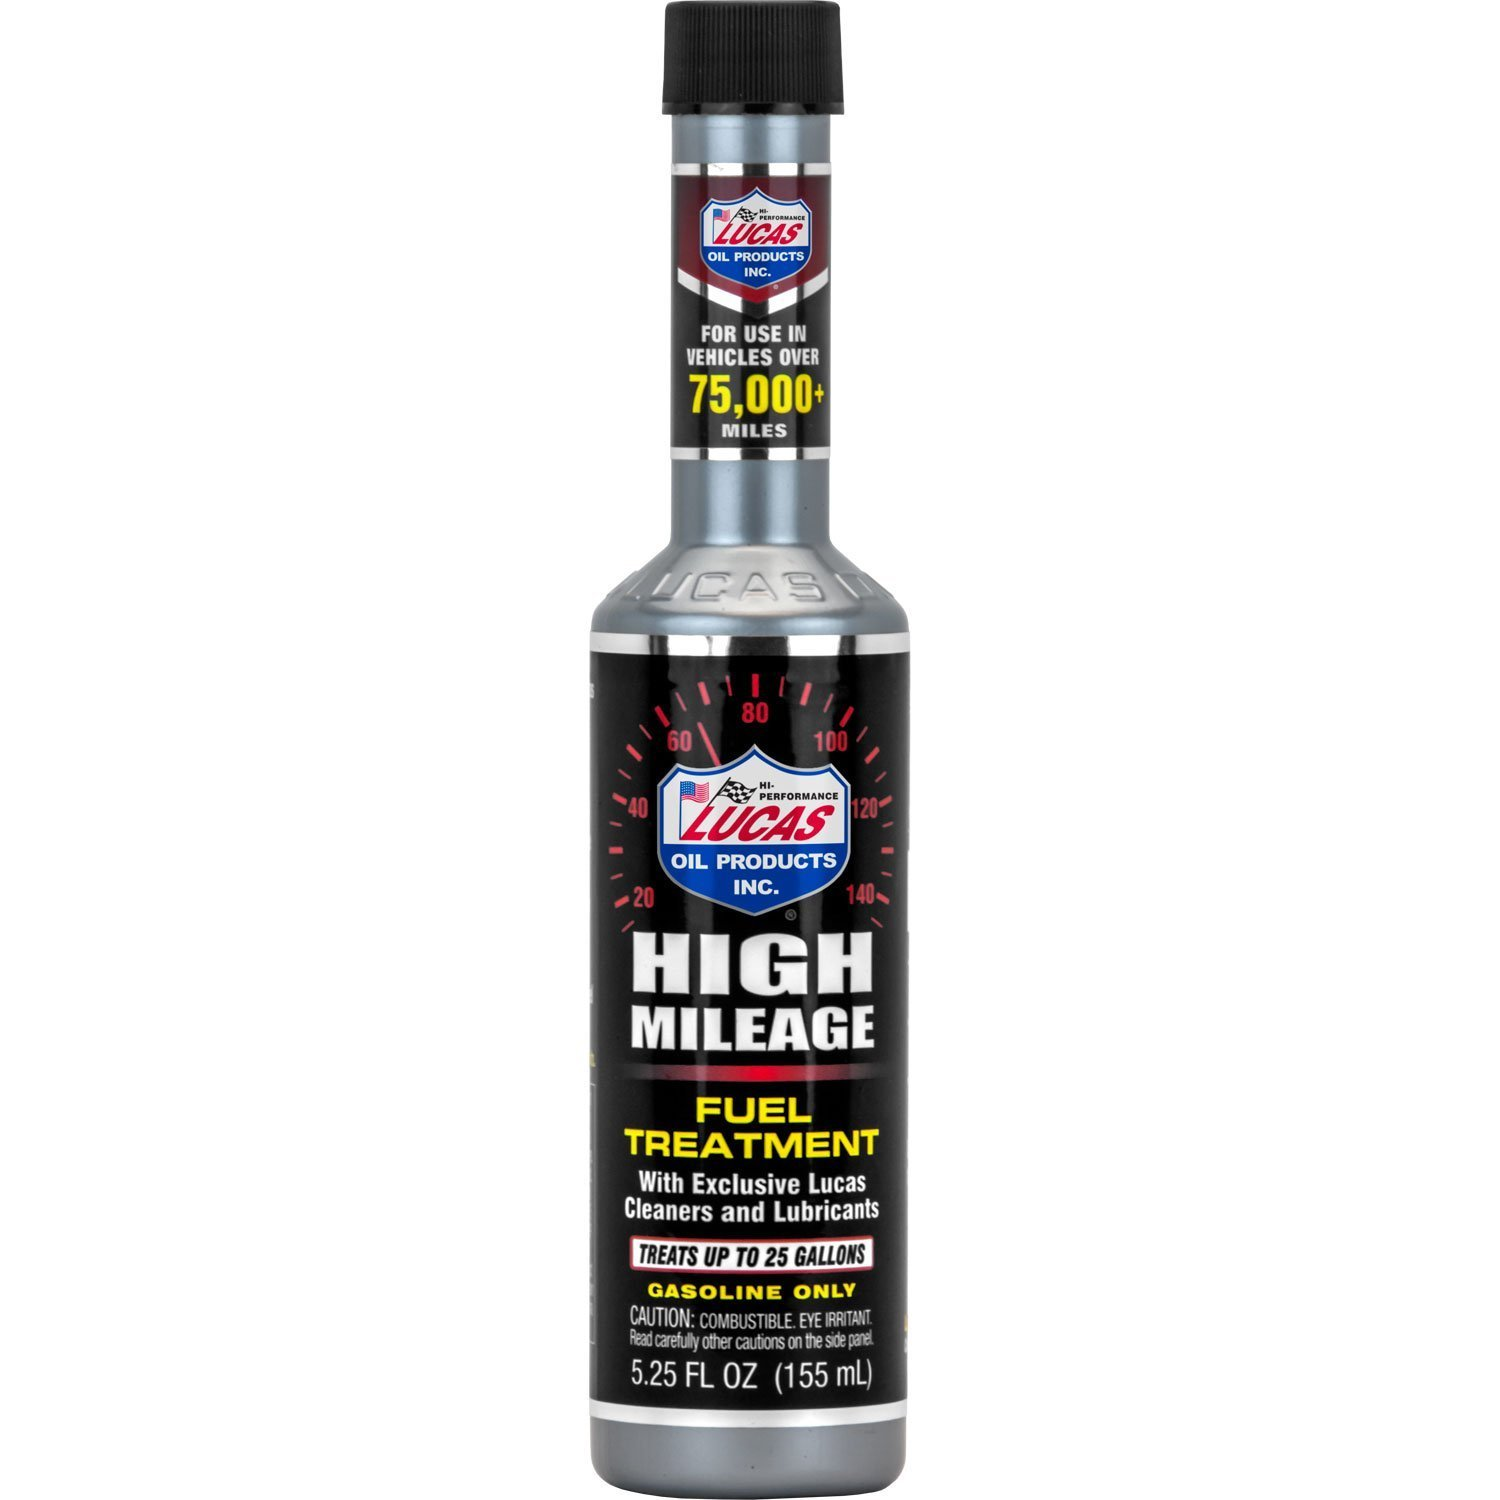 LUCAS OIL 10977 HIGH MILEAGE FUEL TREATME (Quantity 4)